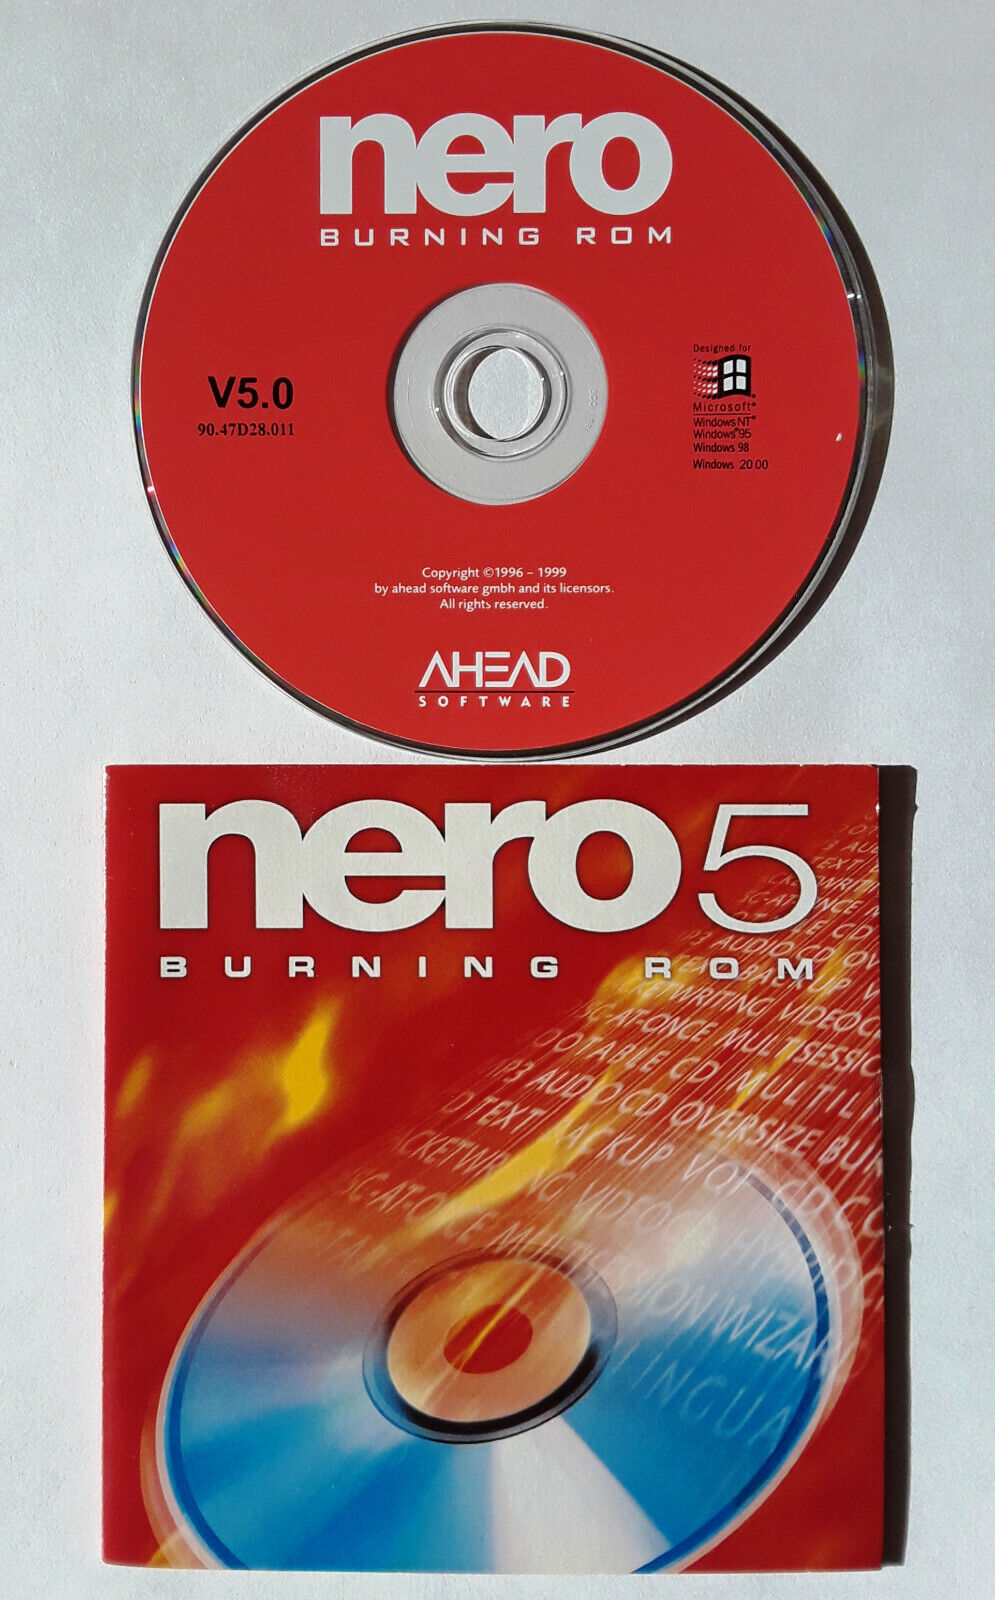 Ahead Nero 5 Burning Software for Windows 95, 98, NT 4.0 and 2000